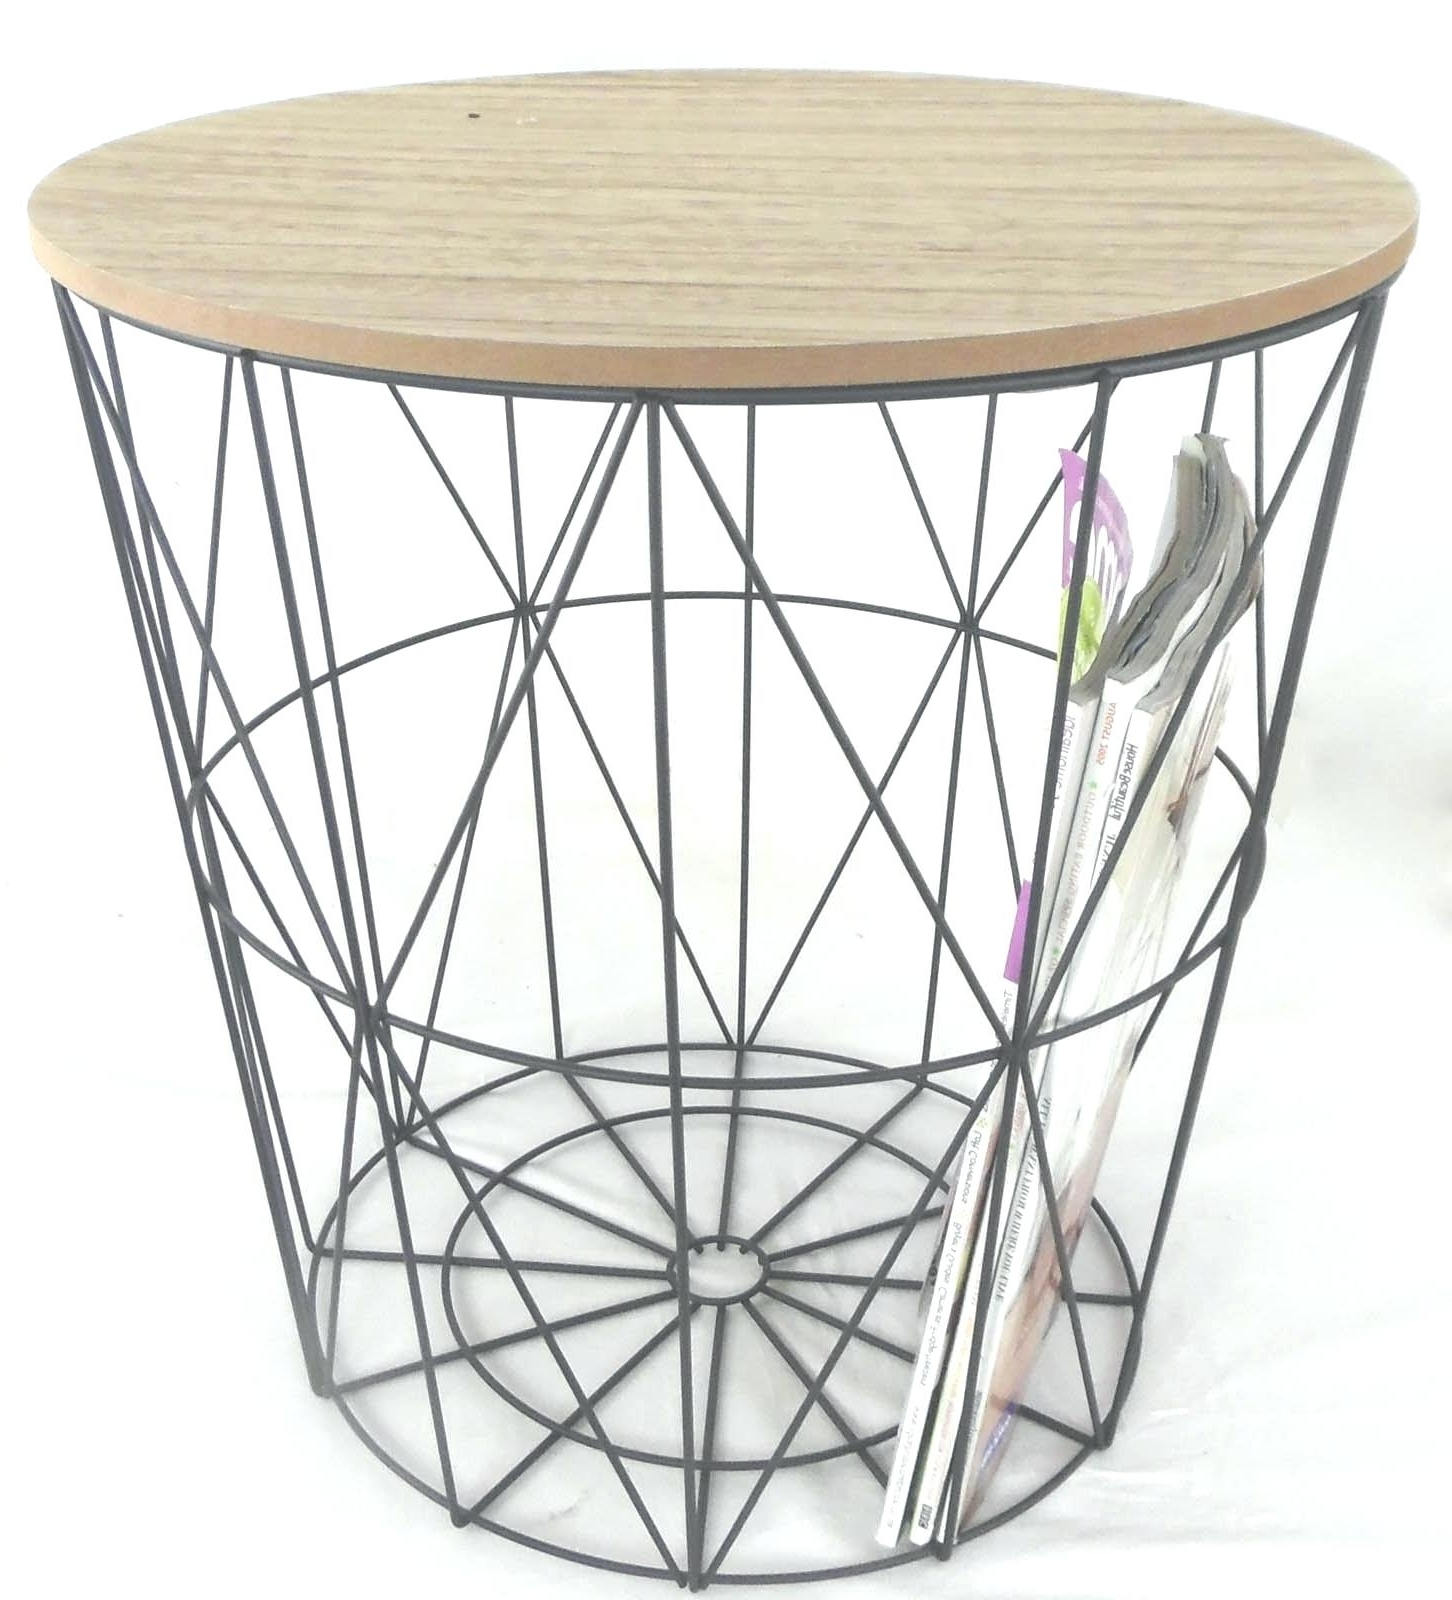 Black Wire Coffee Table Metal Side With Detachable Wooden Top Round Regarding Most Current Black Wire Coffee Tables (View 3 of 20)